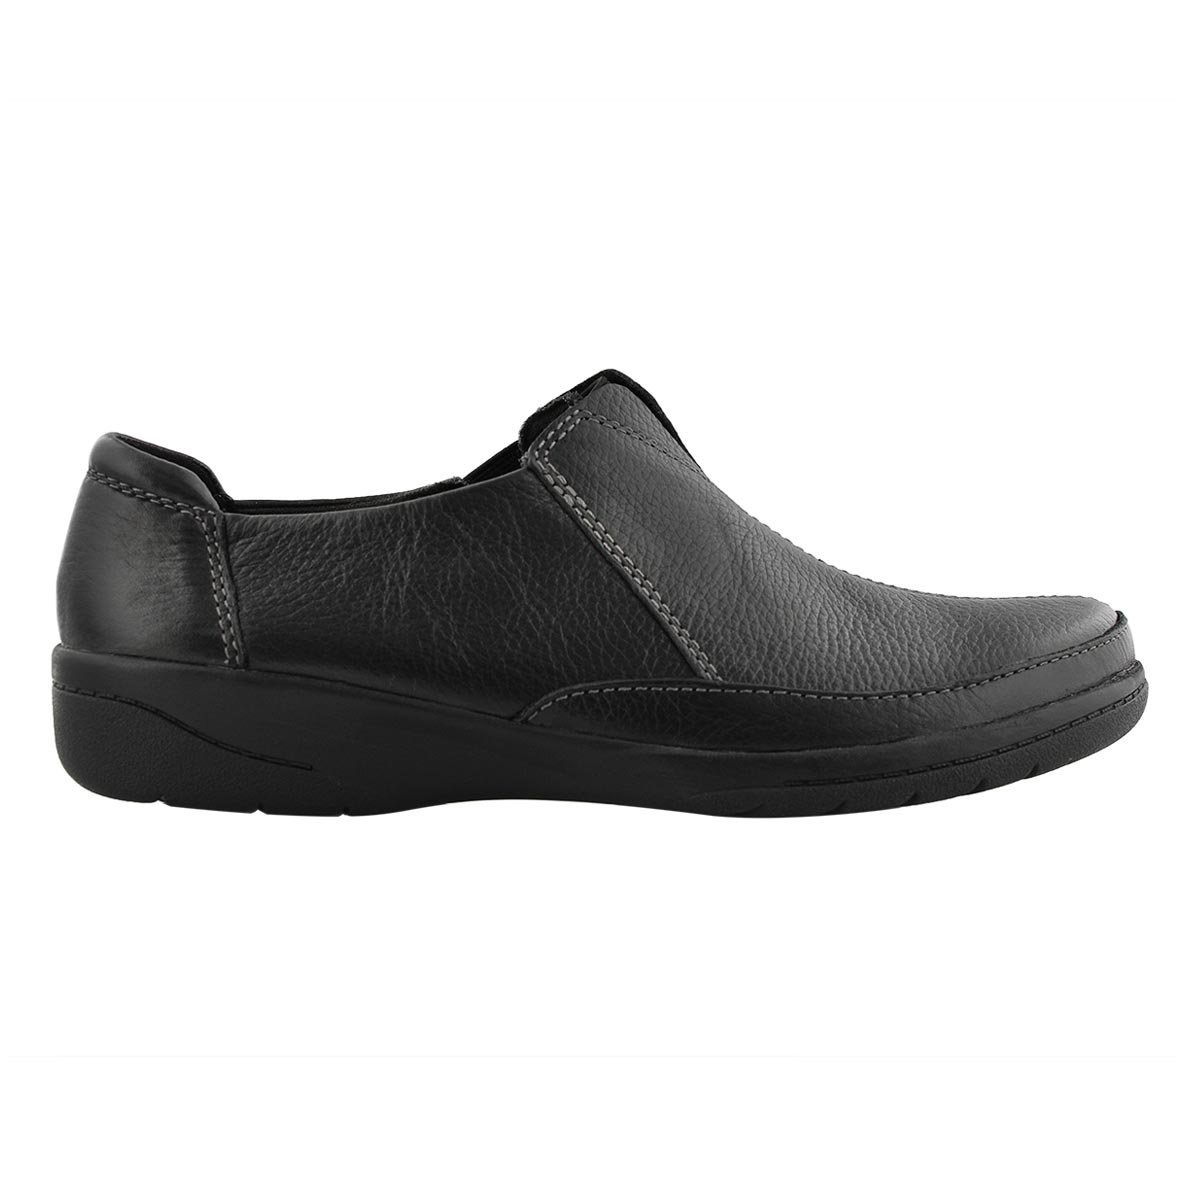 Lds Cheyn Bow black casual slip on